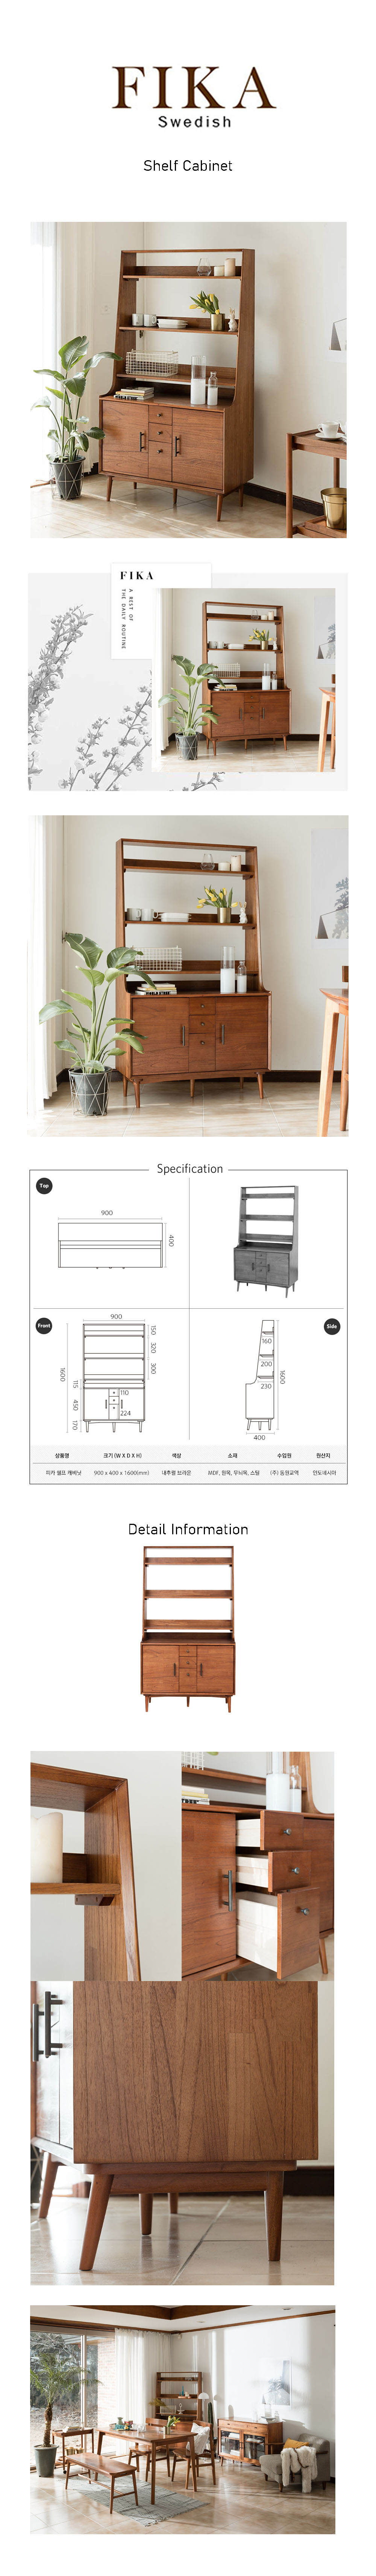 Fika_Shelf_Cabinet_specs_by_born_in_colour